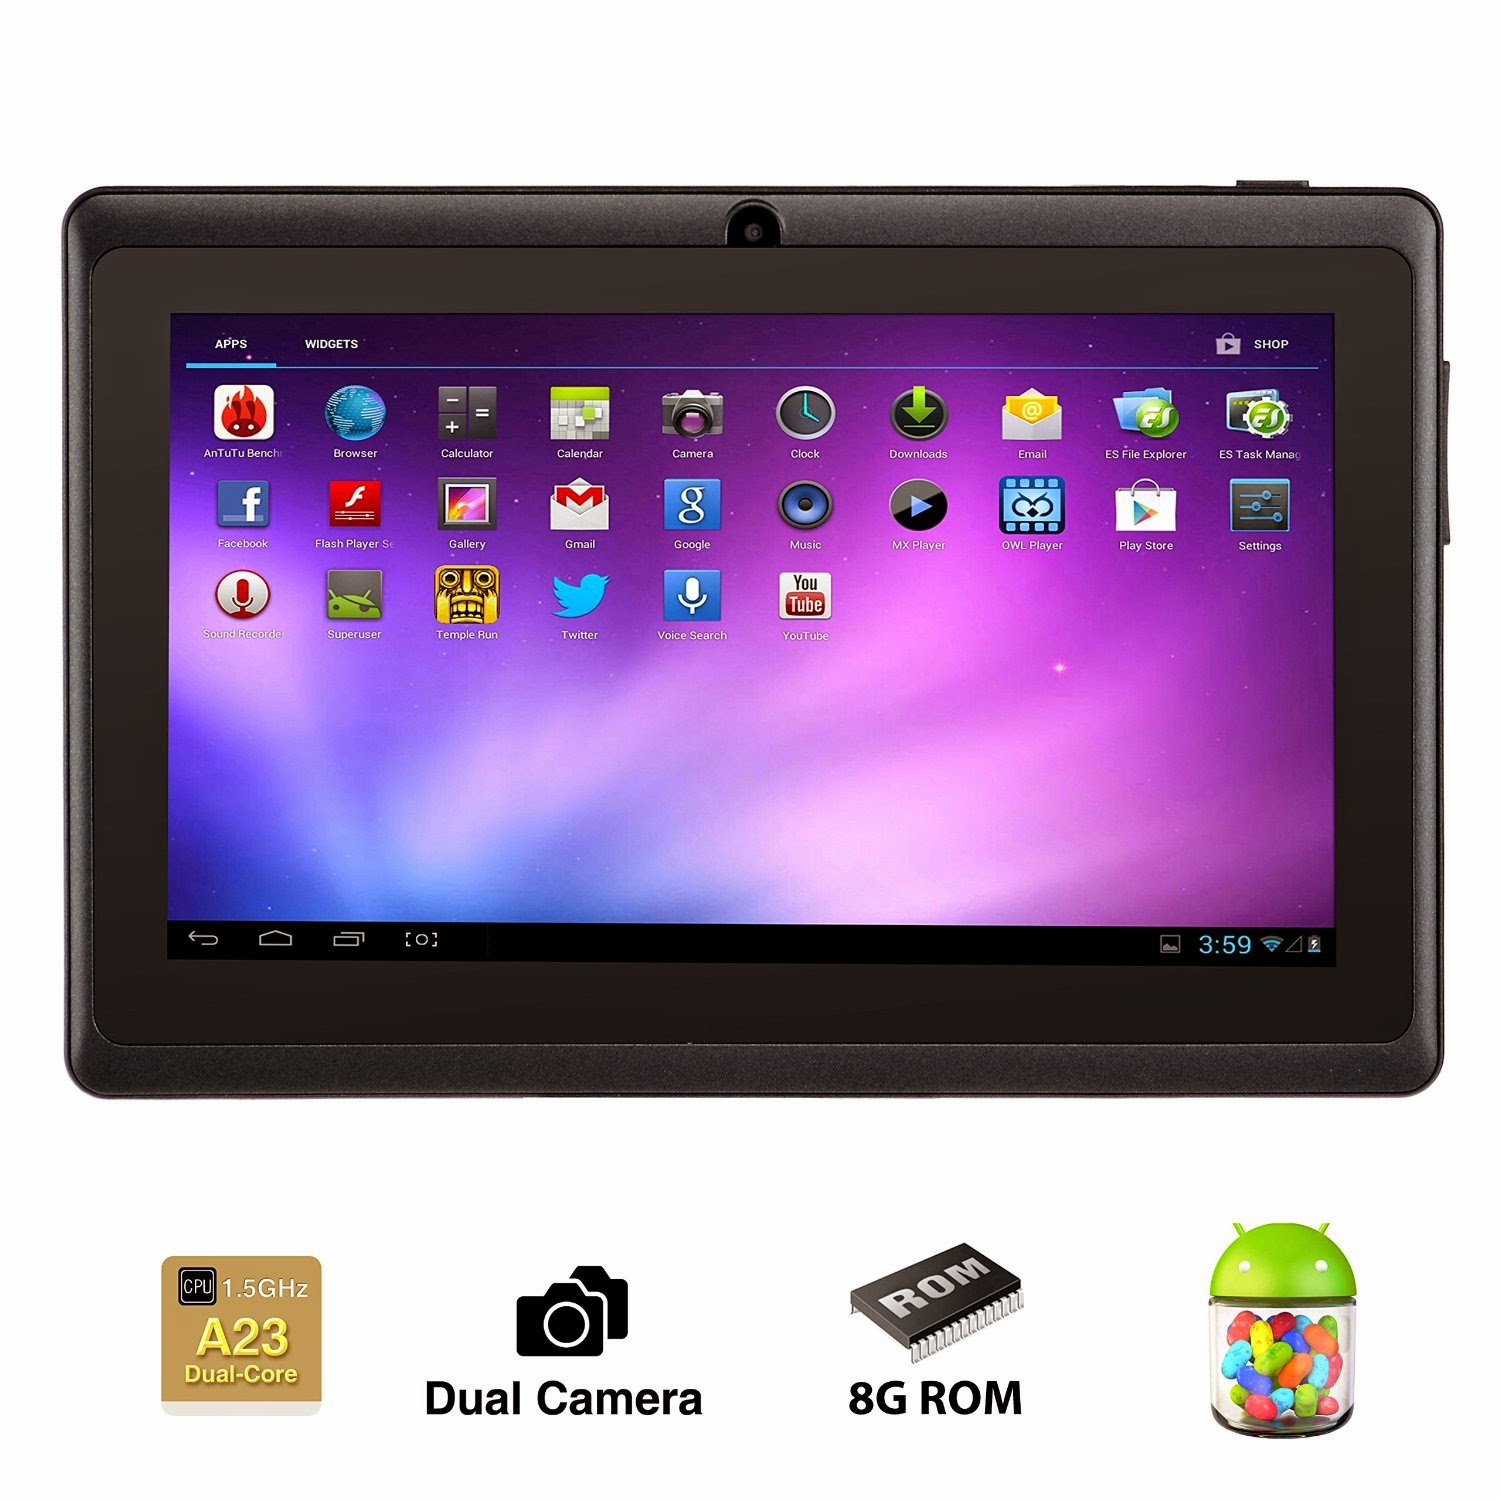 Alldaymall® 7 Inch Android 4.4 KitKat Tablet PC review